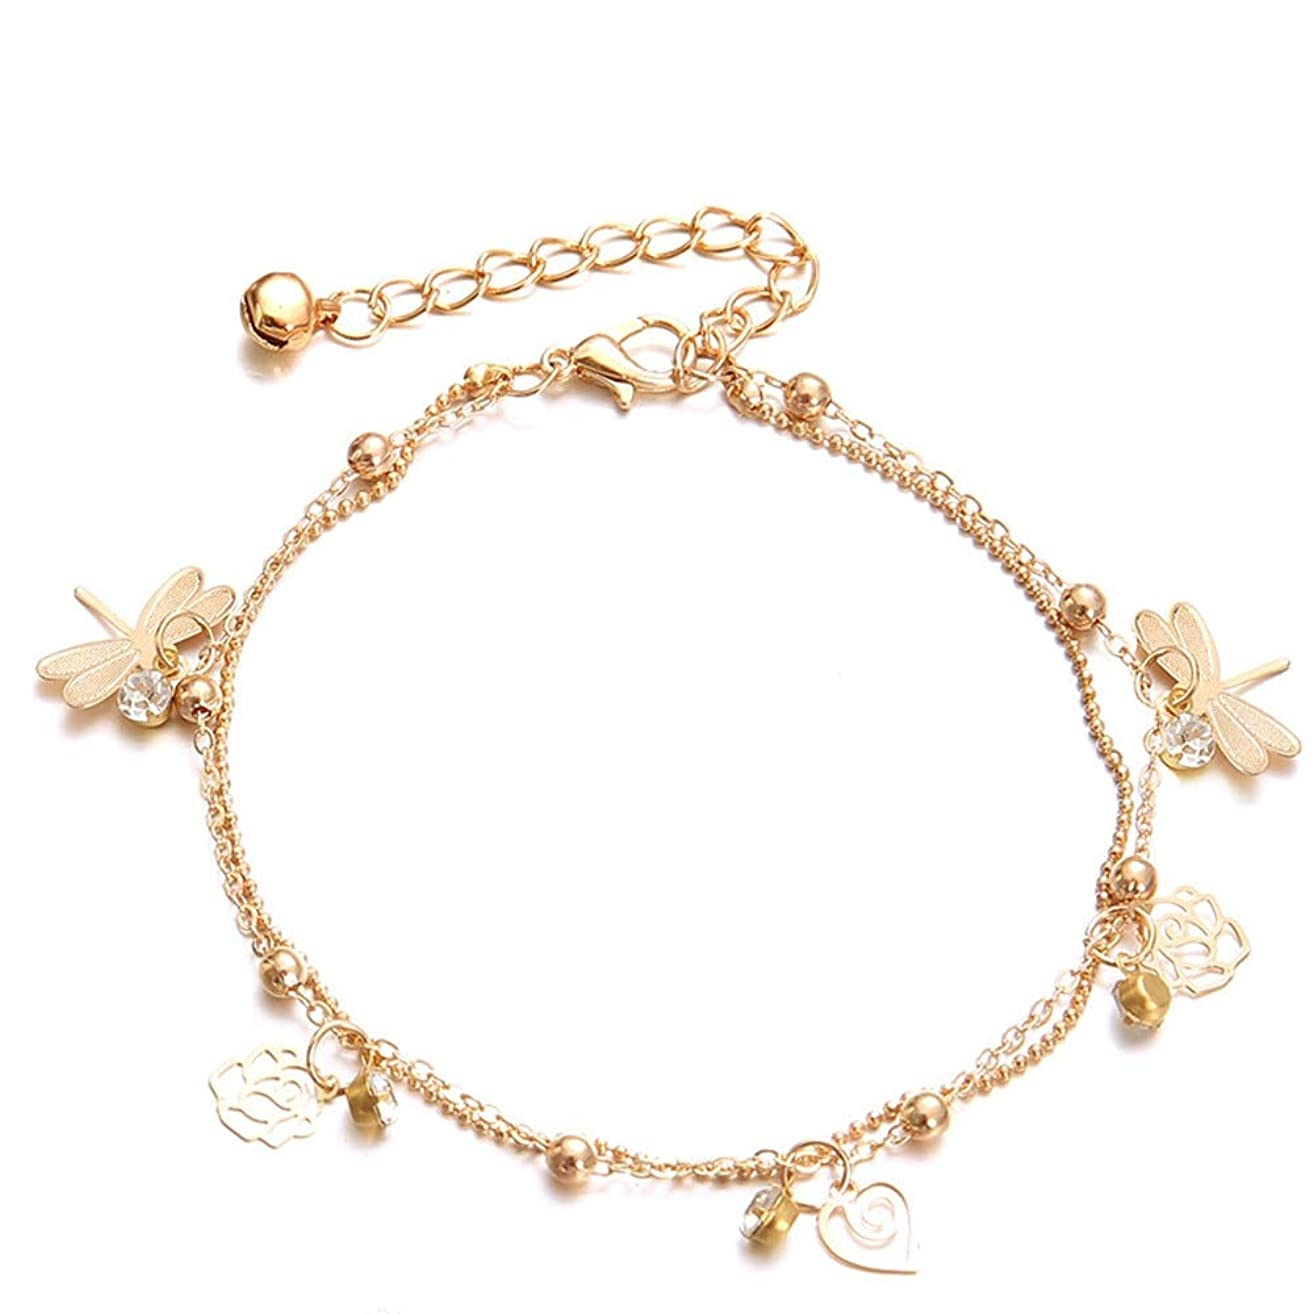 2019 Double Chain Dragonfly Anklet Jewelry Beach Section Anklets Beads Boho Foot Goth Hot sale-in Anklets